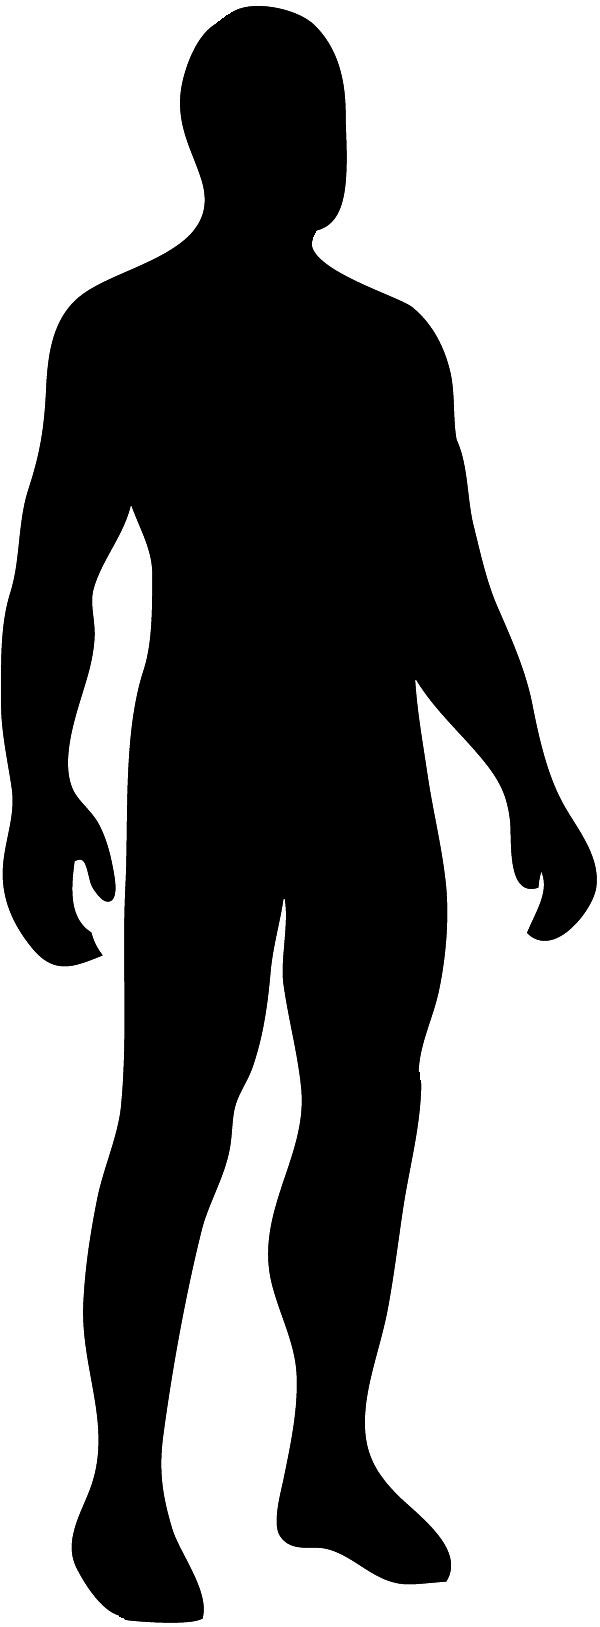 Figure clipart human. Silhouette at getdrawings com